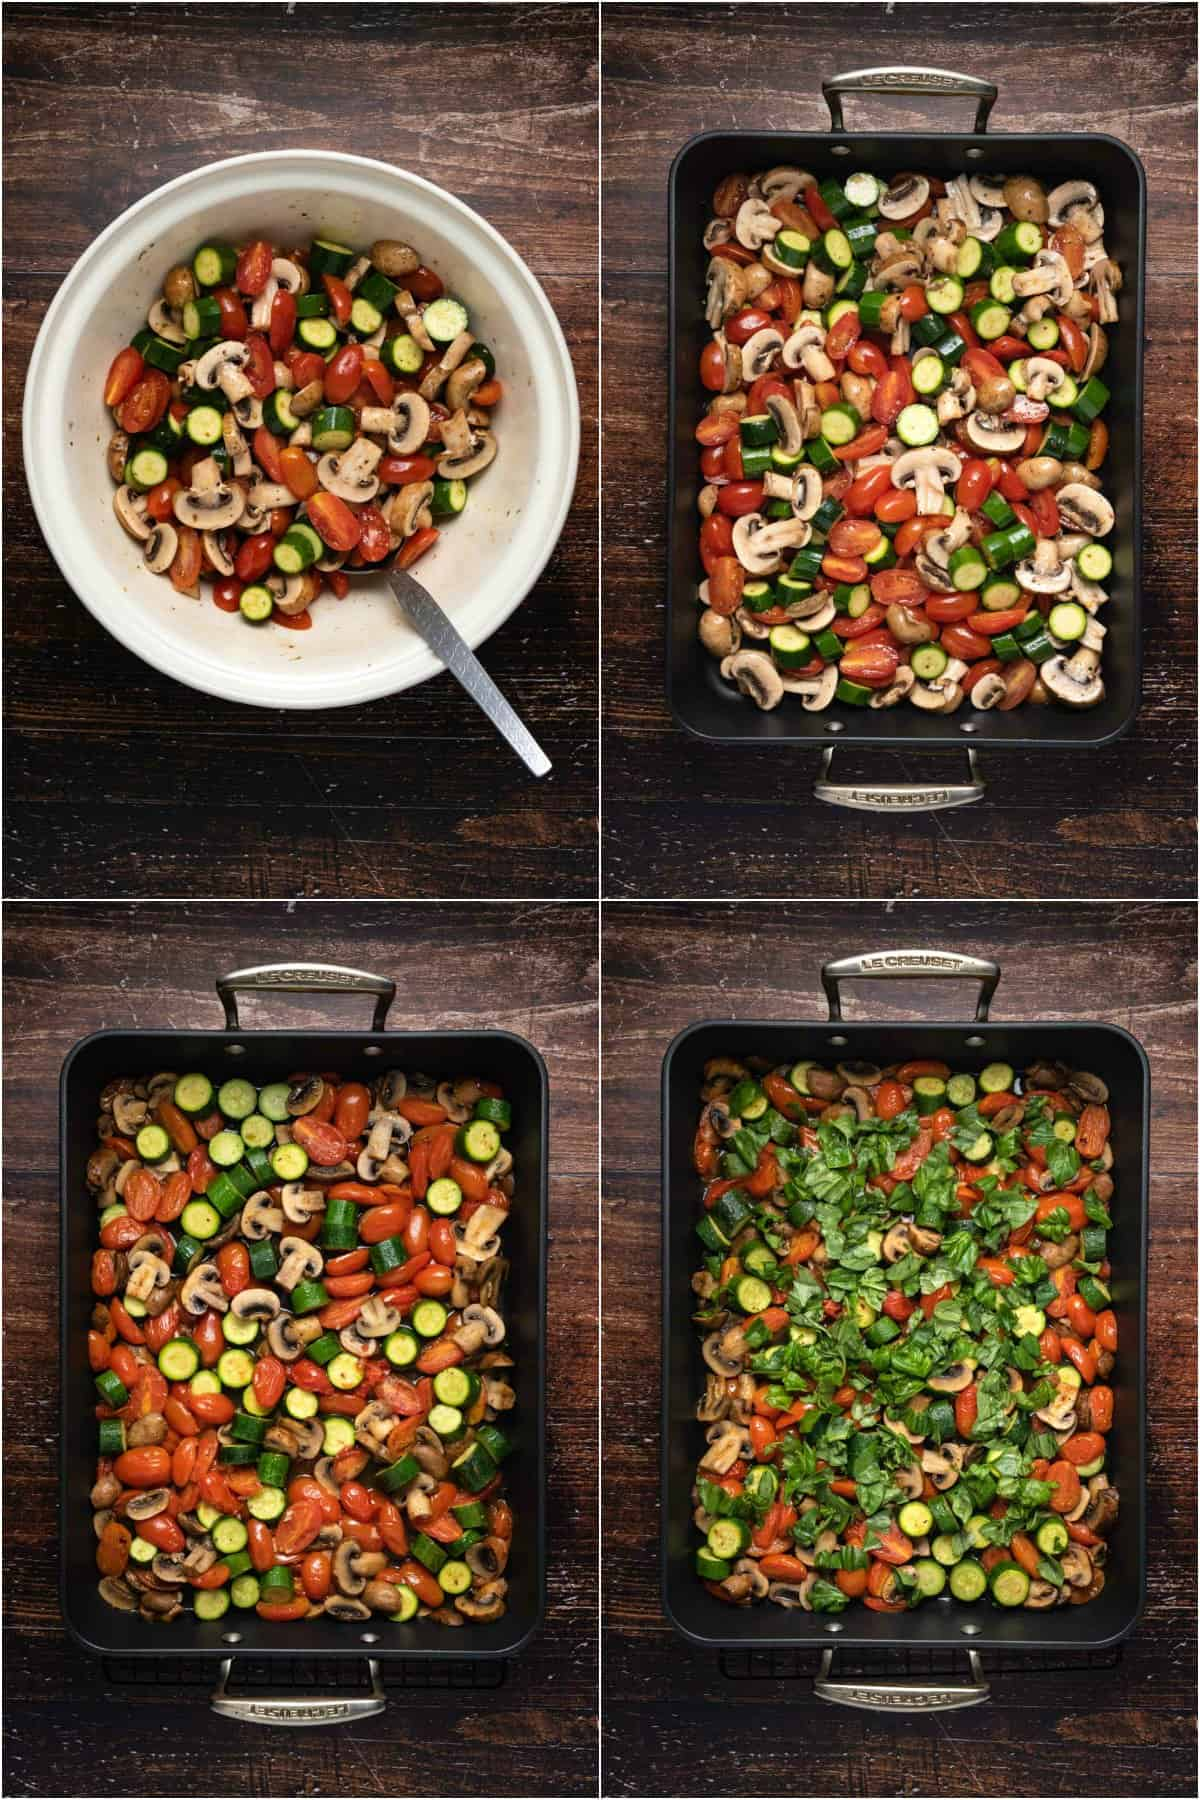 Step by step process photo collage of making roasted vegetables.